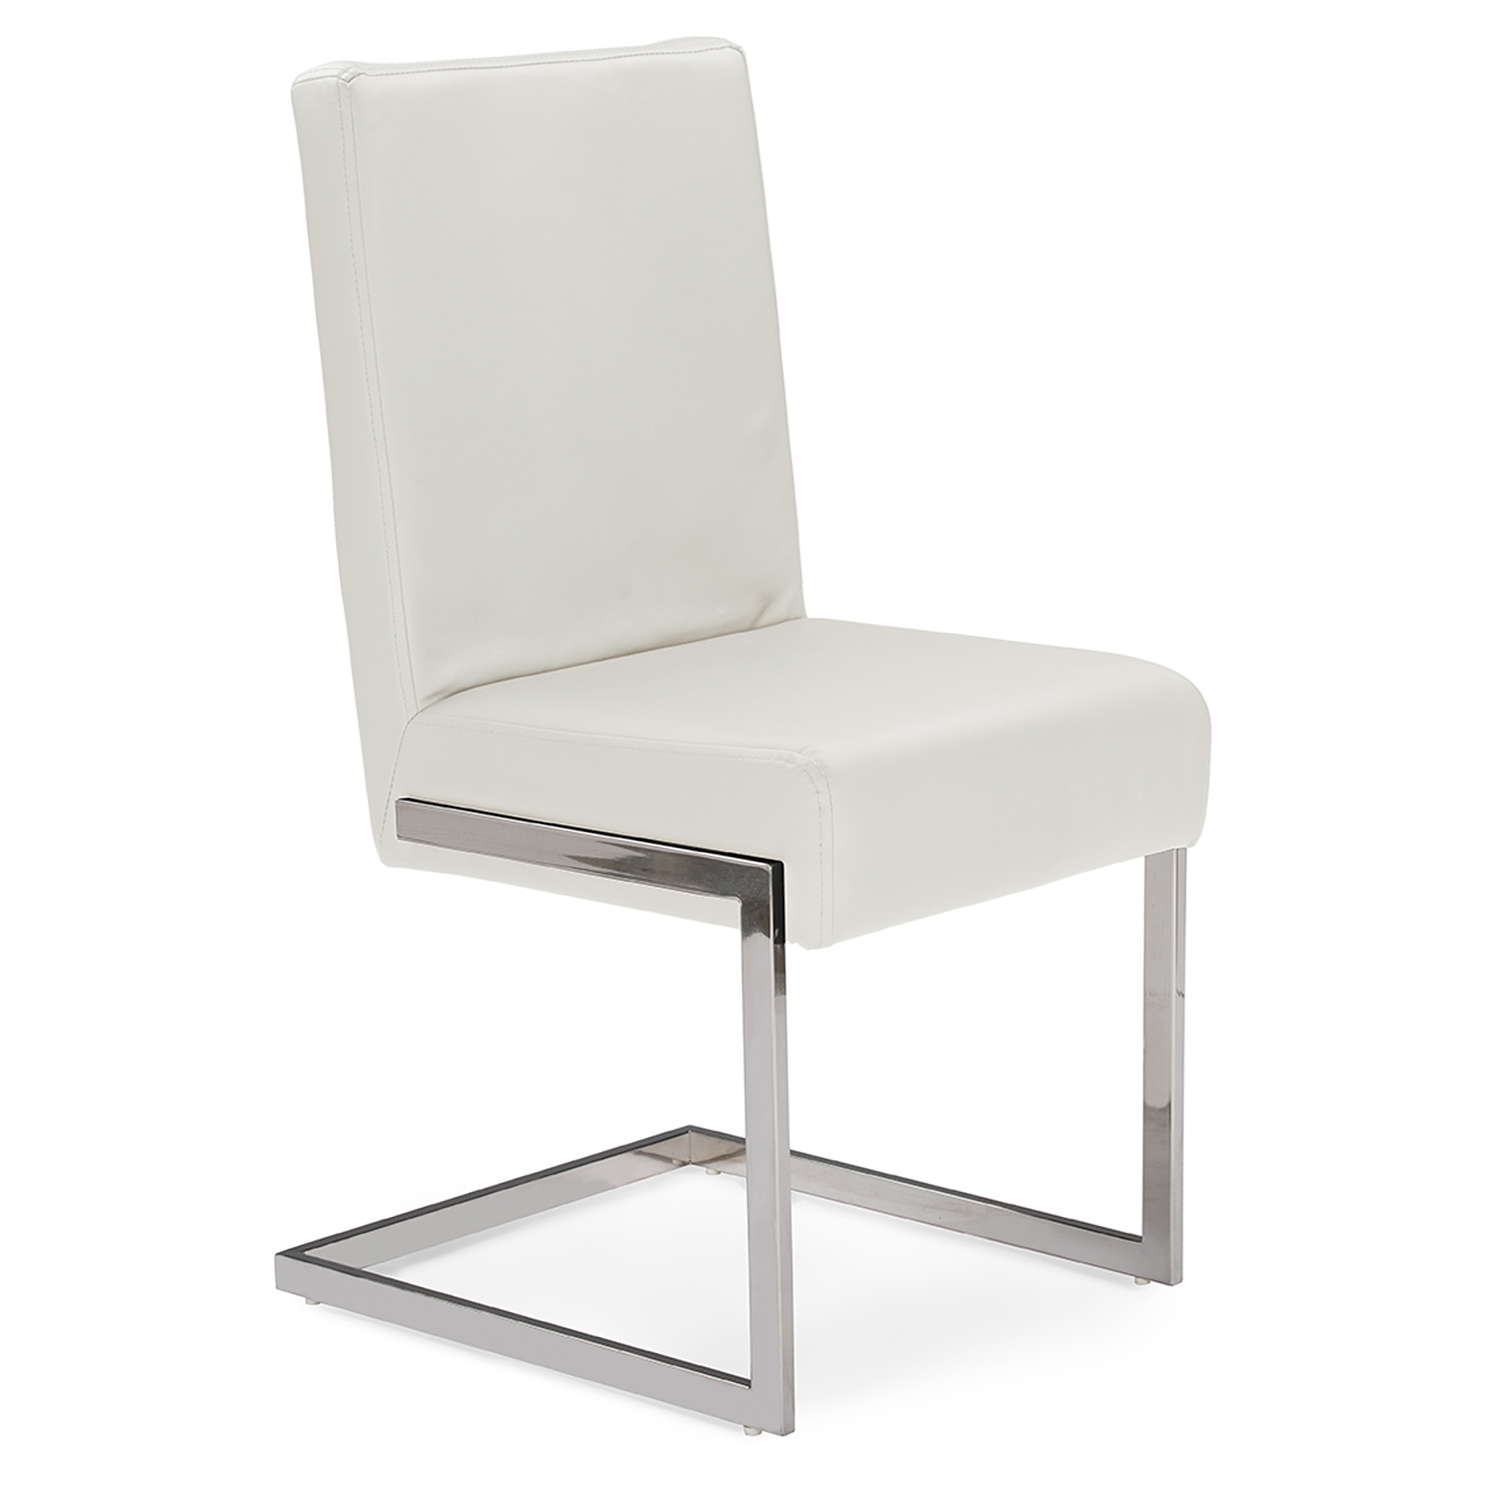 Baxton Studio Toulan Modern and Contemporary White Faux Leather Upholstered Stainless Steel ...